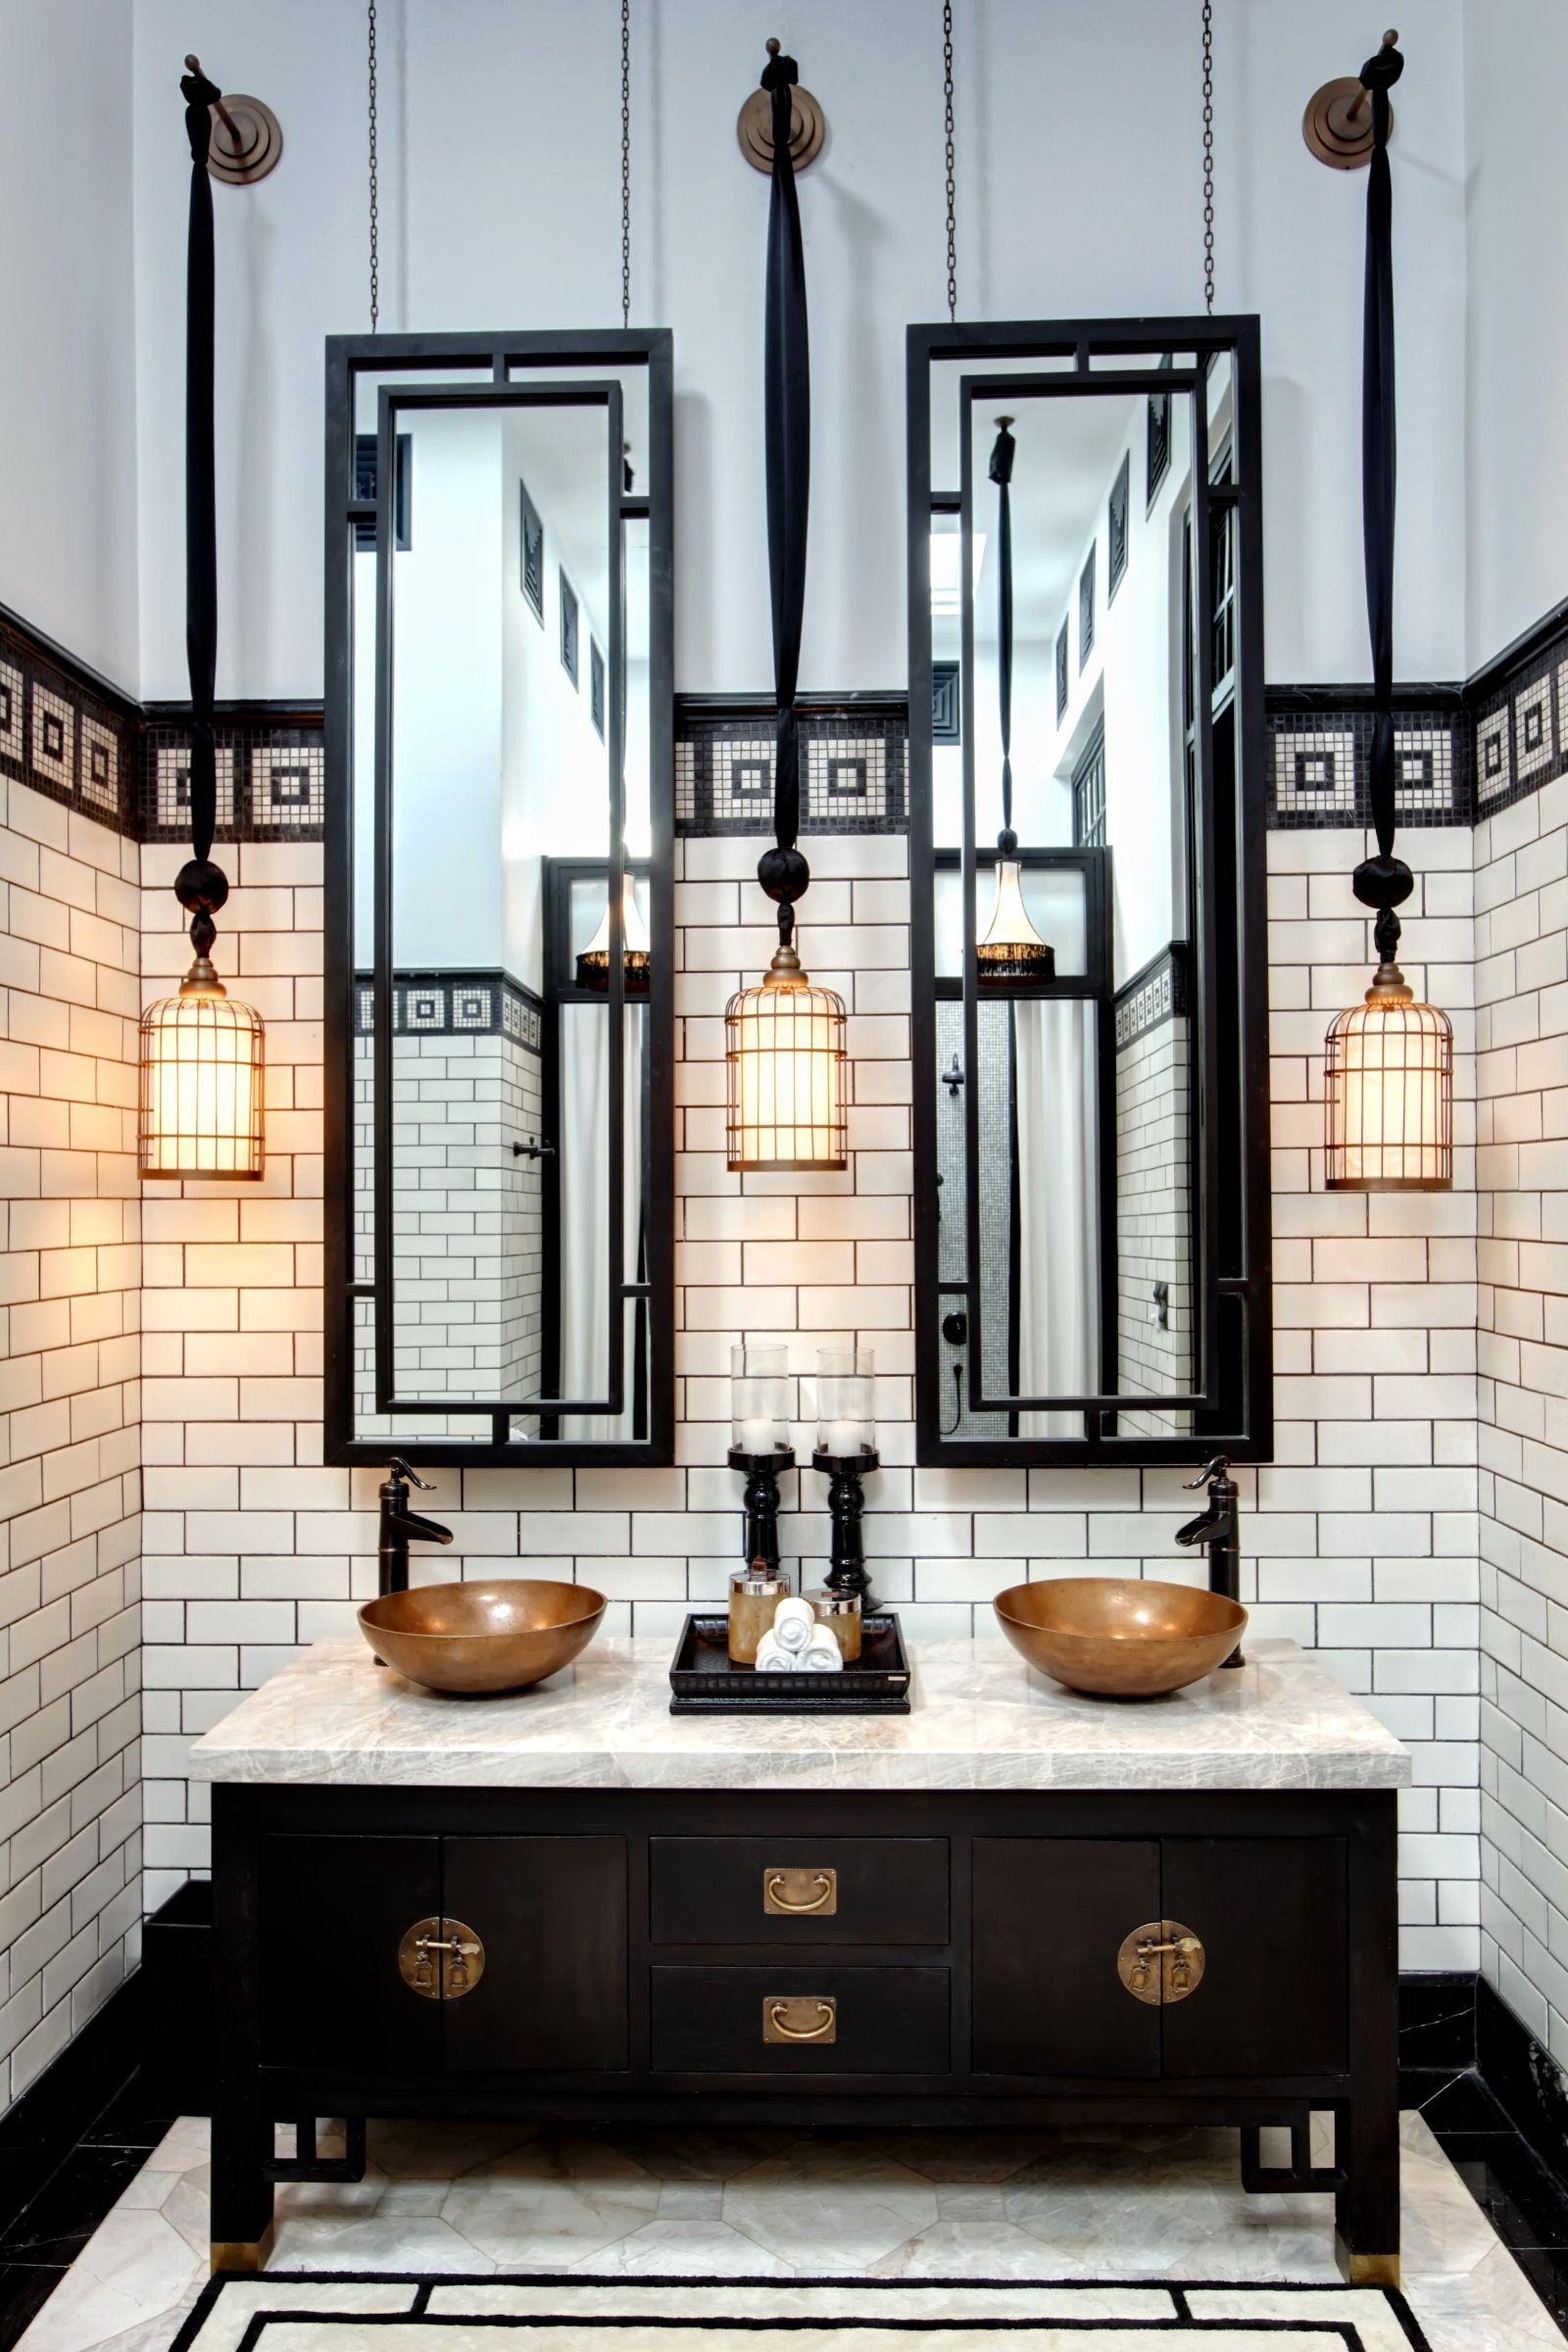 siam hotel, bangkok | bathroom designbensley | bathroom